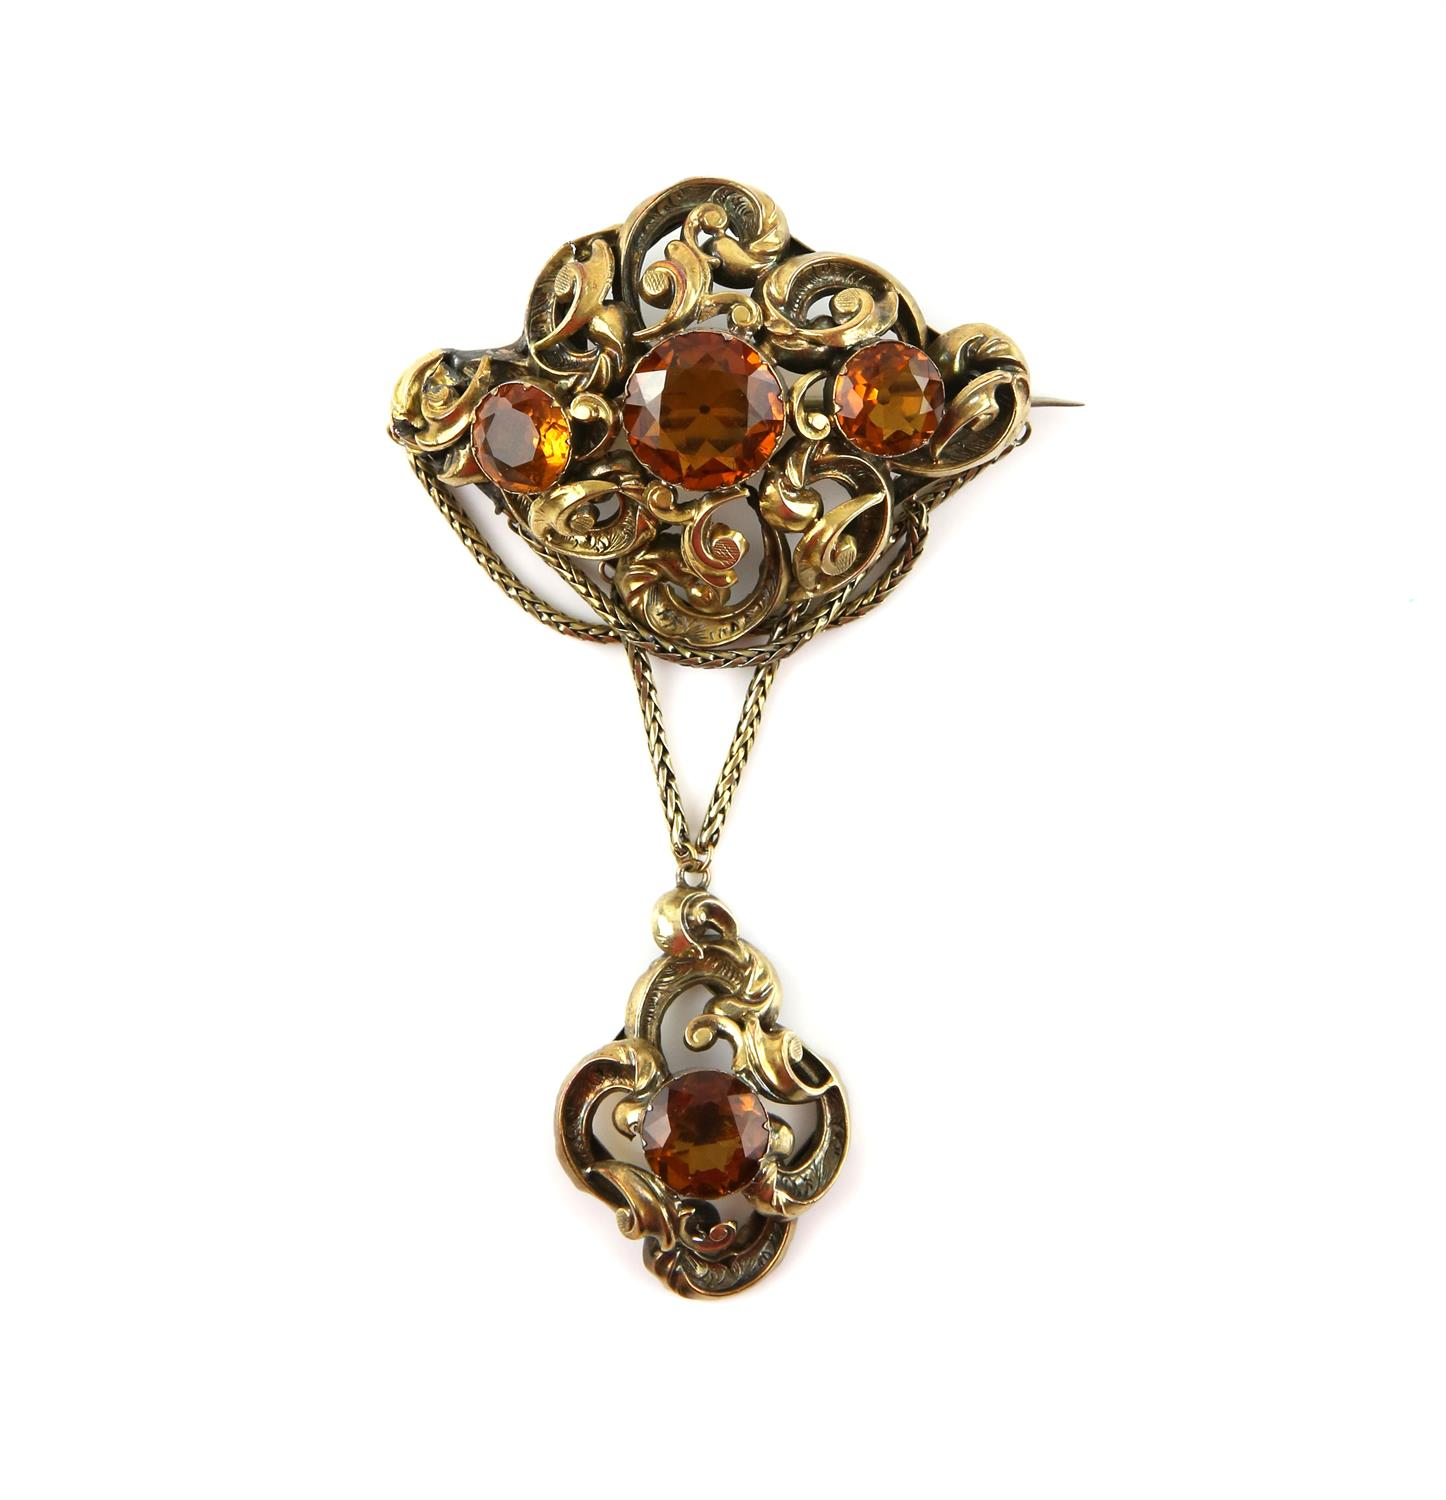 Victorian citrine drop brooch, designed as an ornate openwork brooch, set with three round cut